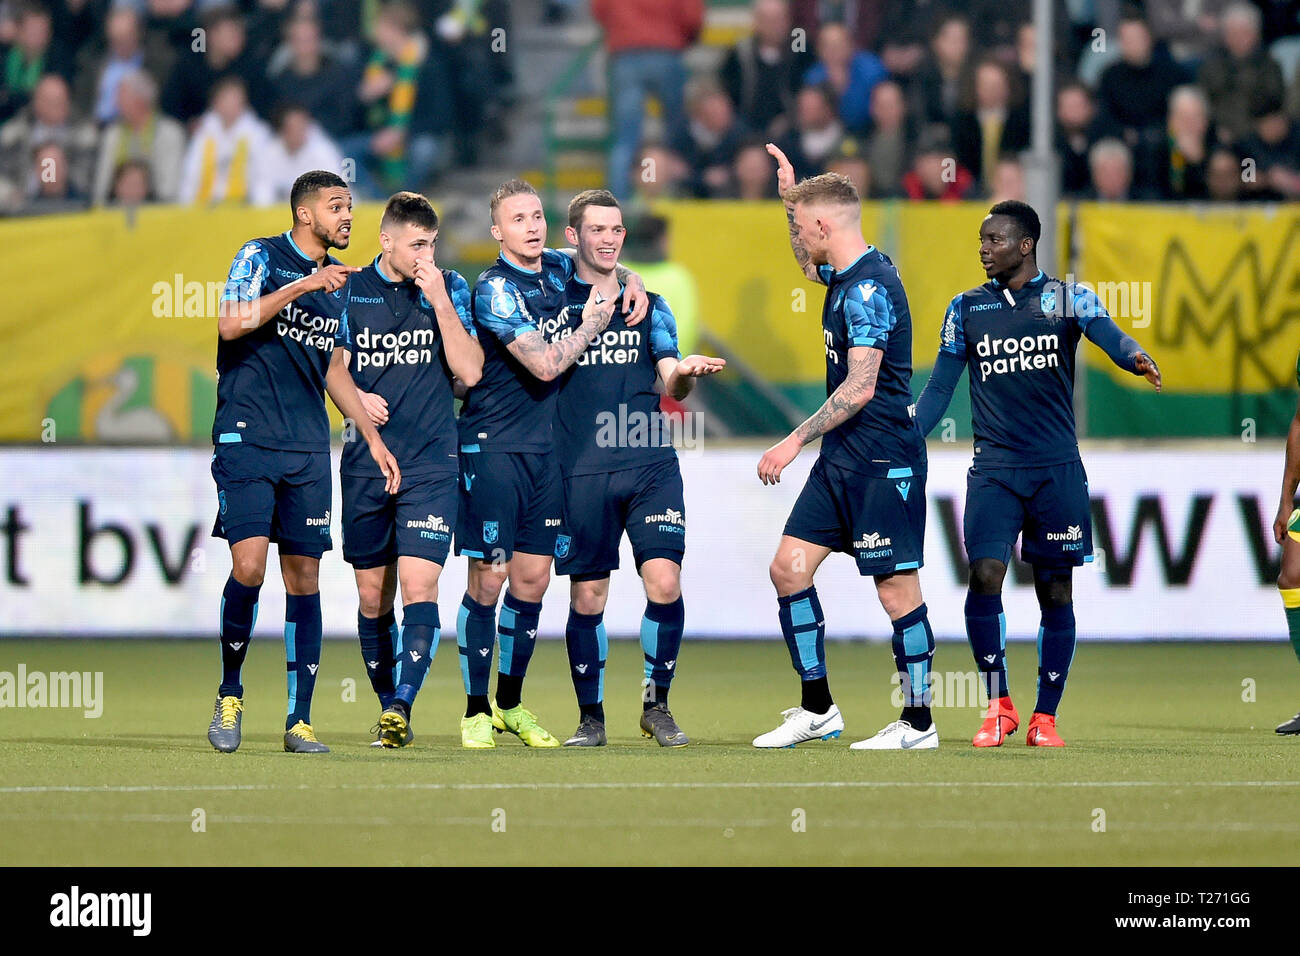 Den Haag 30 03 2019 Cars Jeans Stadion Season 2018 2019 Vitesse Player Thomas Buitink Celebrating The 2 3 And His Hattrick During The Match Ado Den Haag Vitesse Stock Photo Alamy